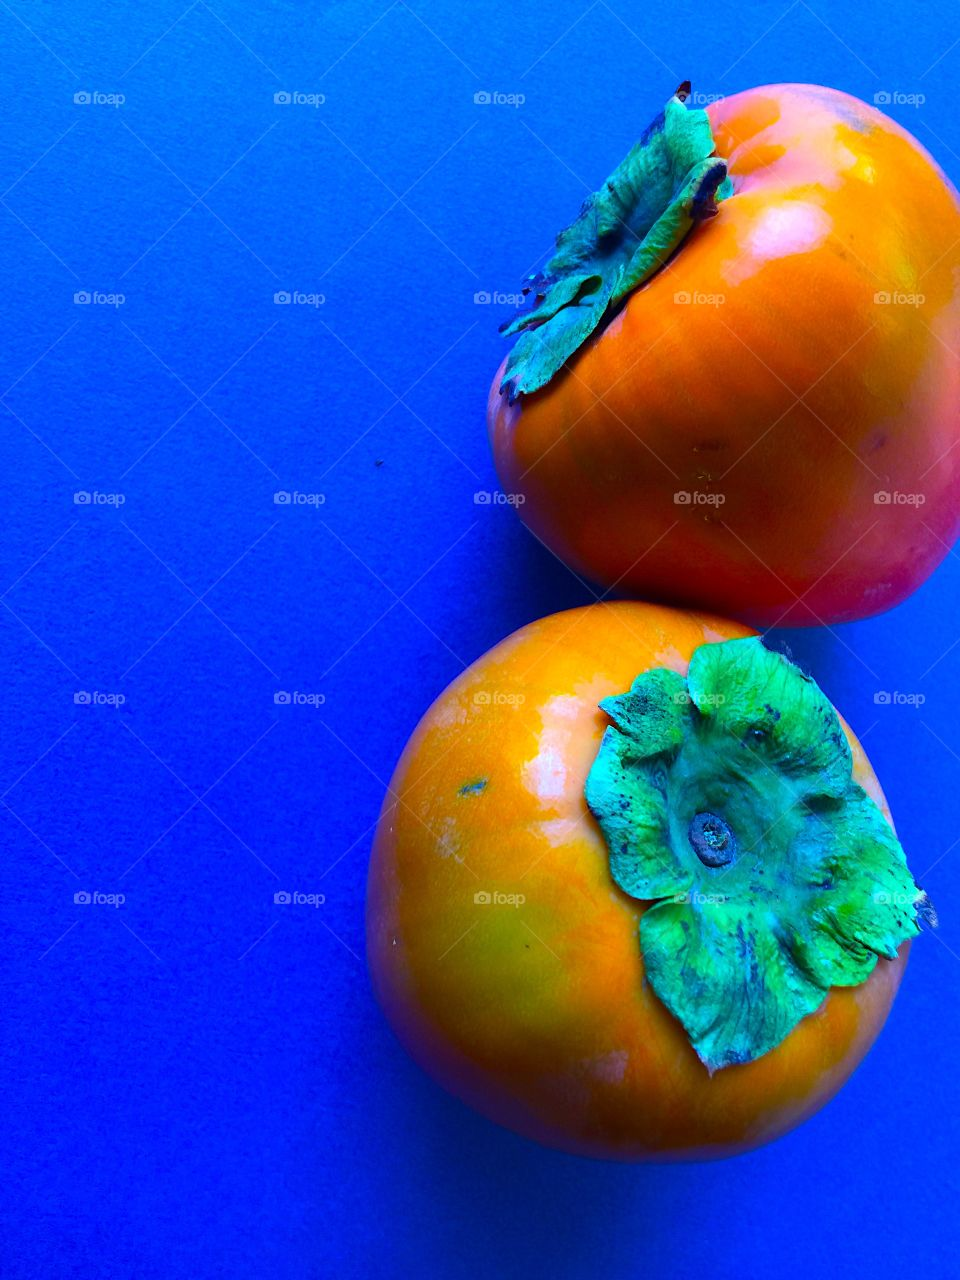 Two persimmons on blue background